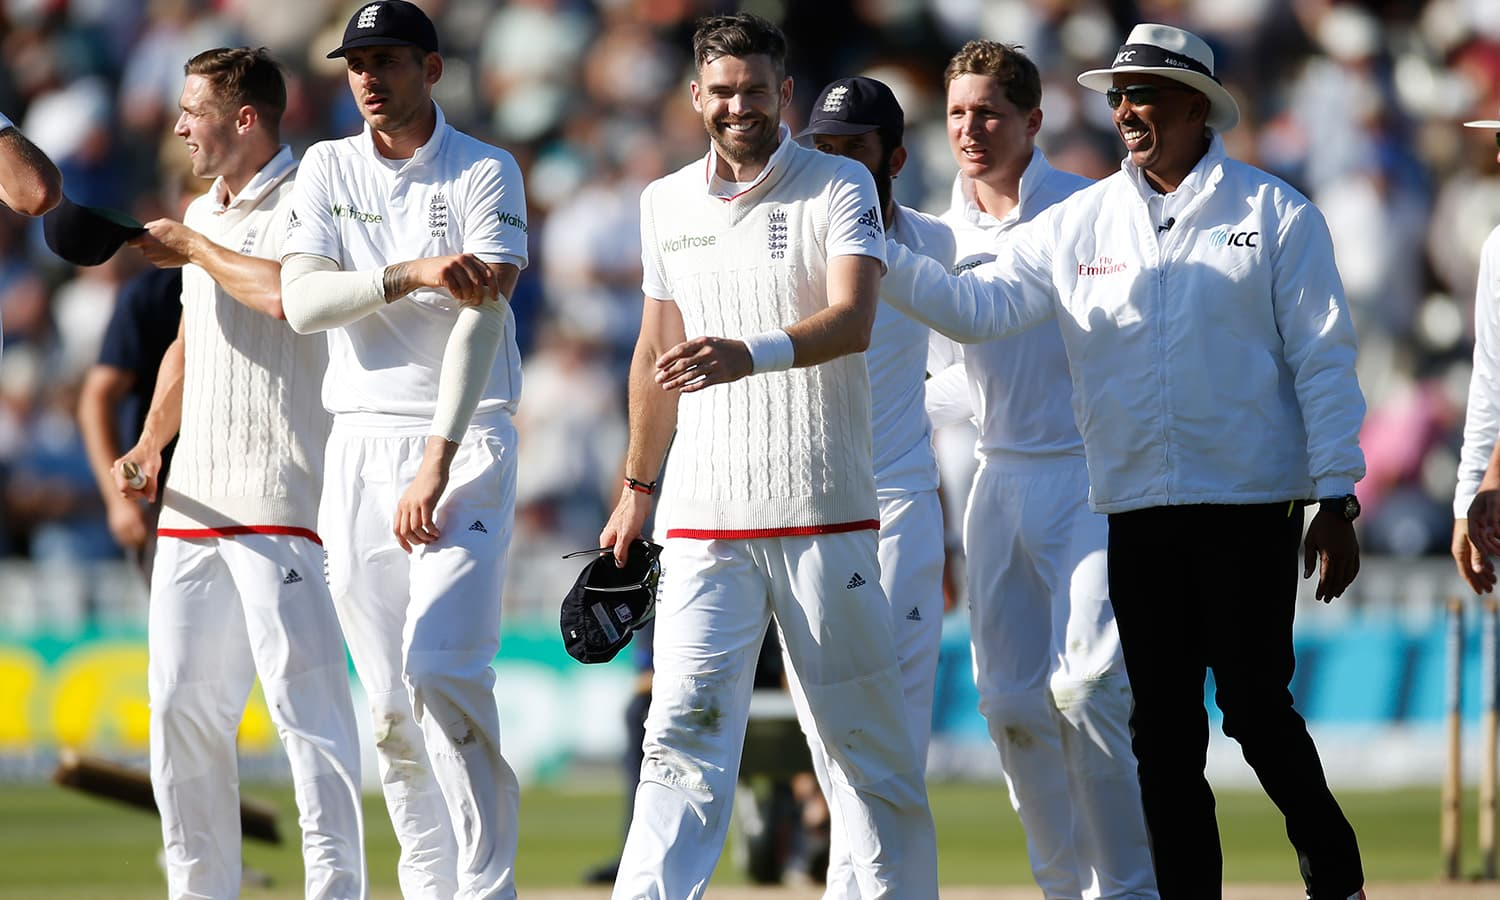 England's James Anderson and Umpire Joel Wilson after the match. — Reuters